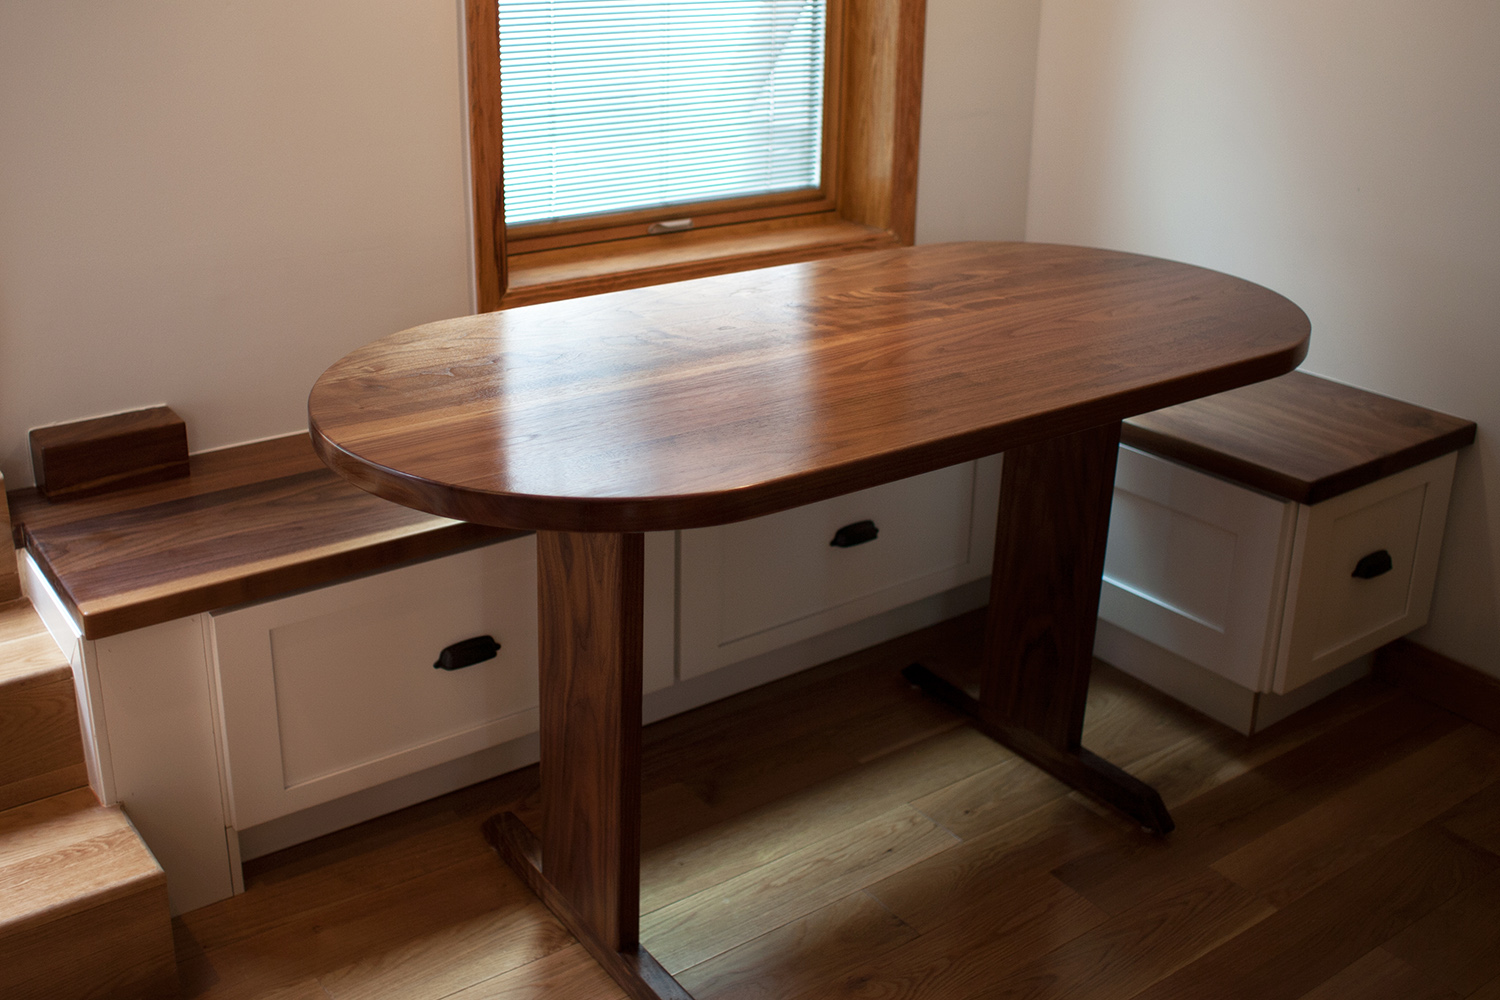 Walnut Table and Built-In Bench